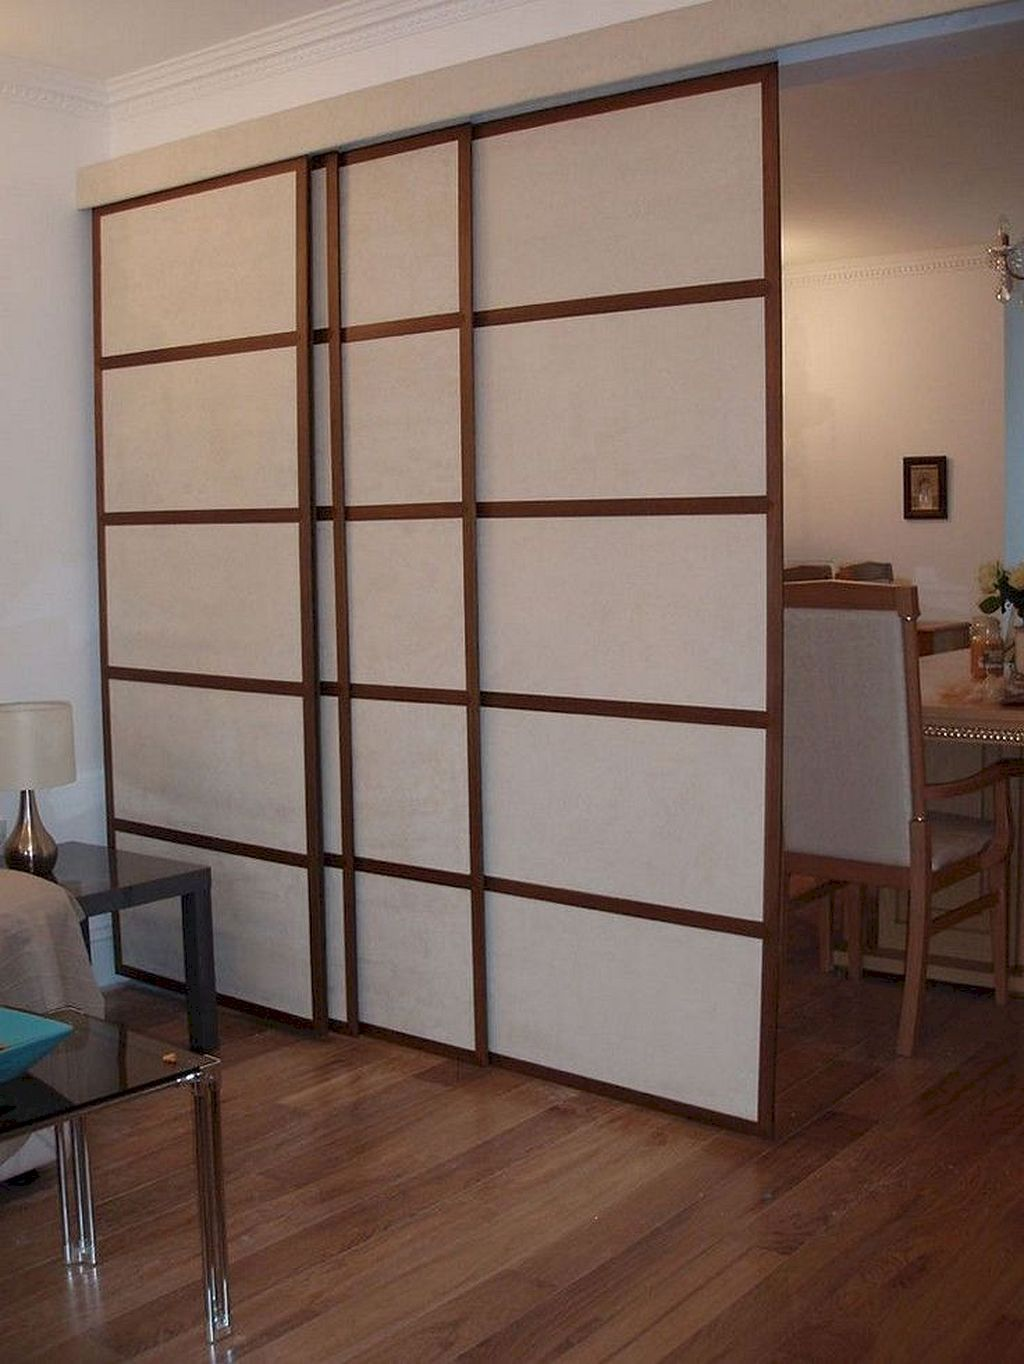 Room Divider Concepts That Can Be Utilized In Apartments Cheap Room Dividers Sliding Door Room Dividers Ikea Room Divider